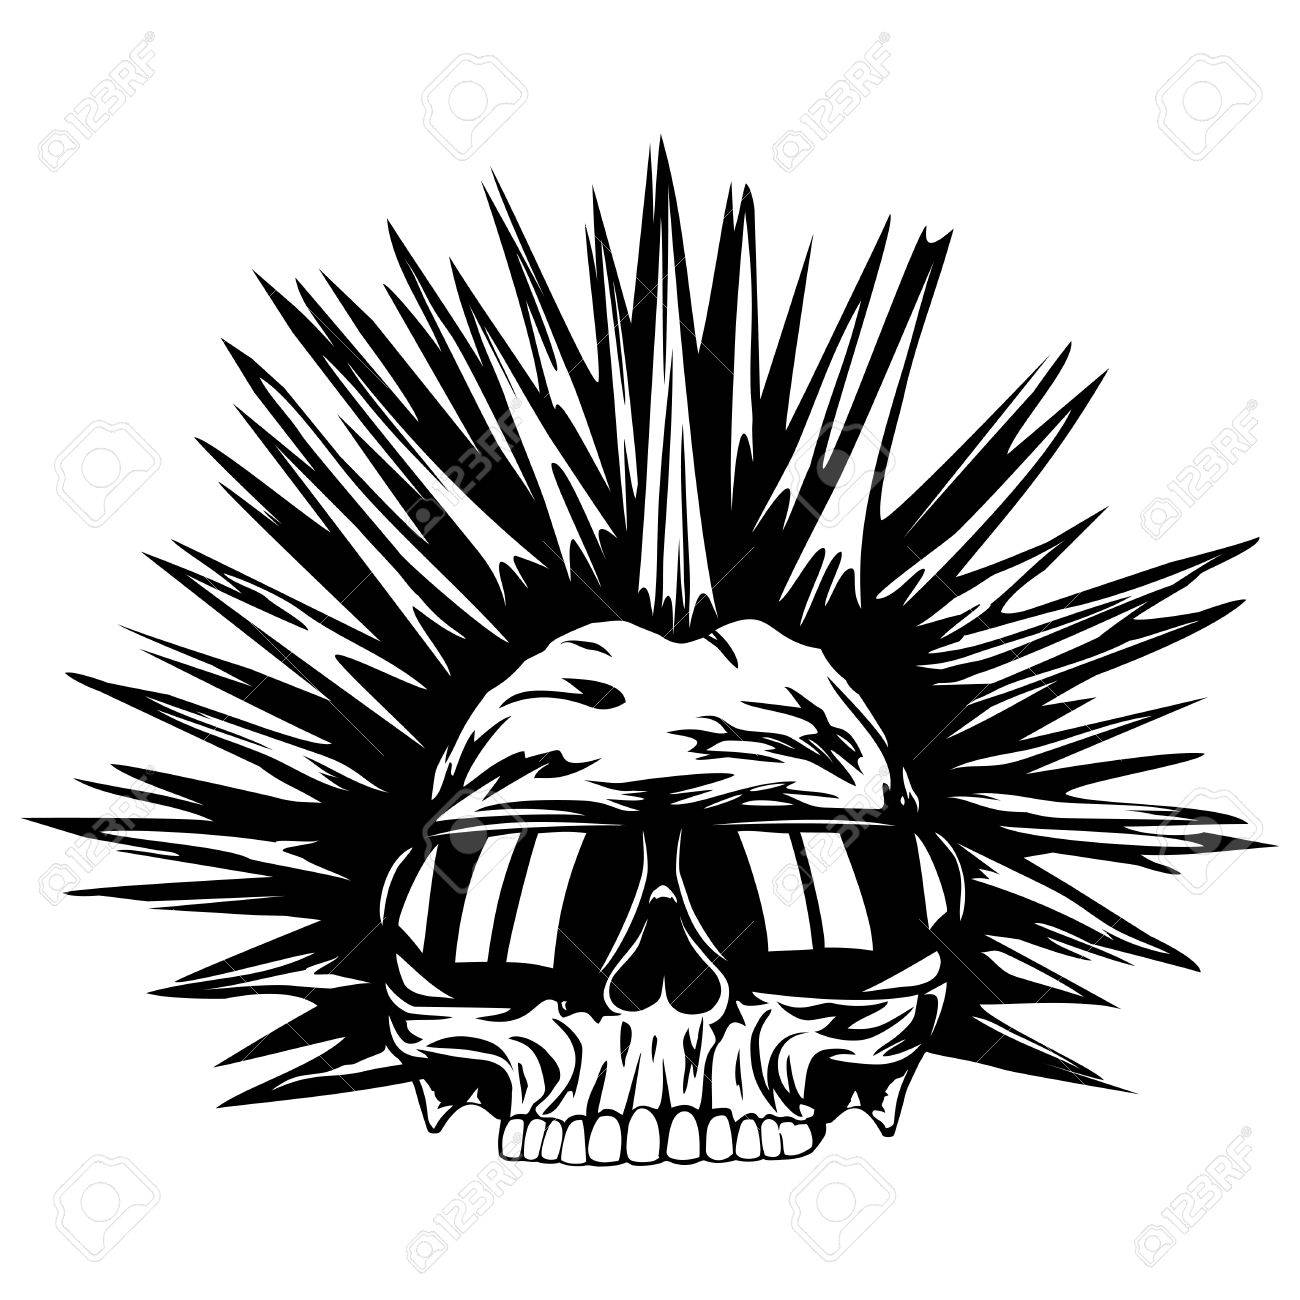 abstract vector illustration grunge skull punk with sunglasses rh 123rf com sons of anarchy logo vector download